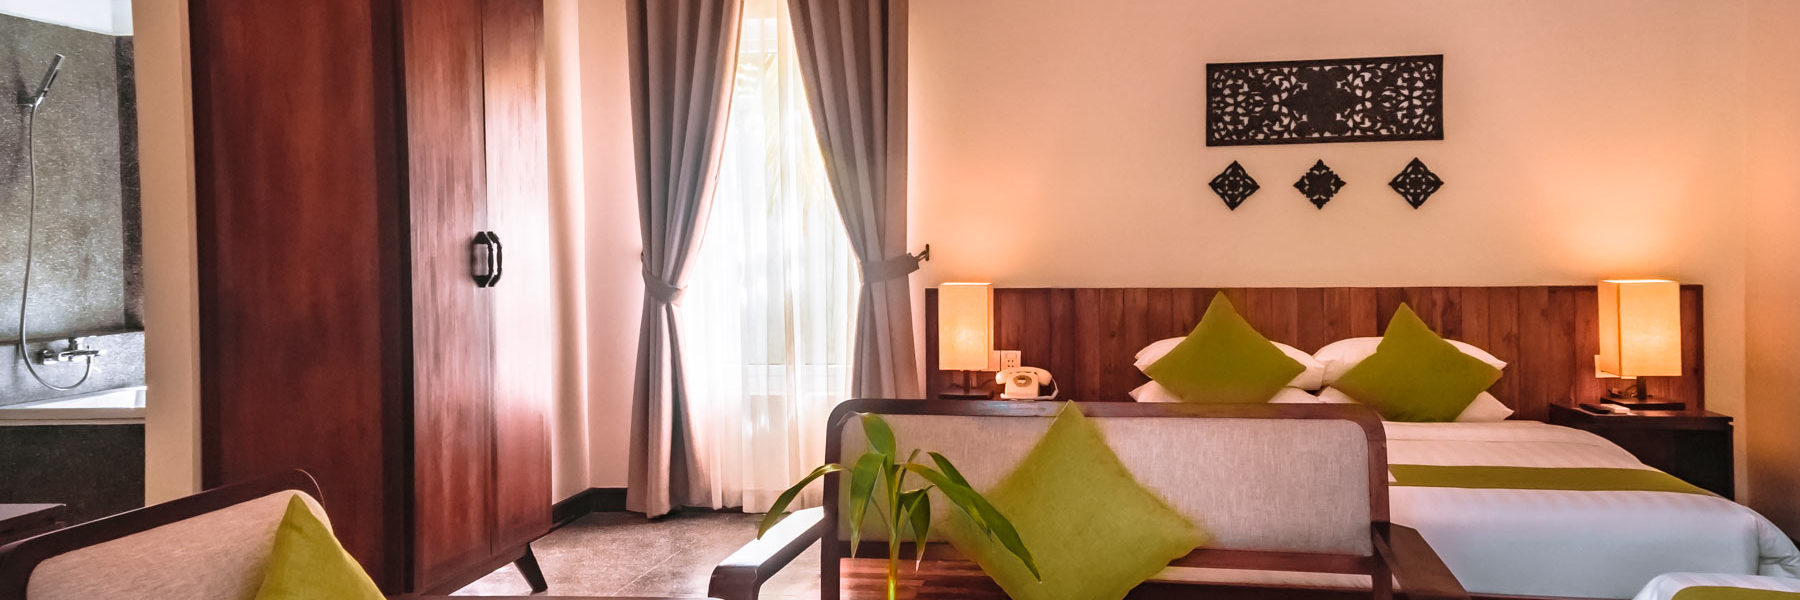 Advaya Residence in Siem Reap - Cambodia. King Suite Family Room, accommodation fully furnished with private bathroom, king size bed, wardrobe, air conditioner.